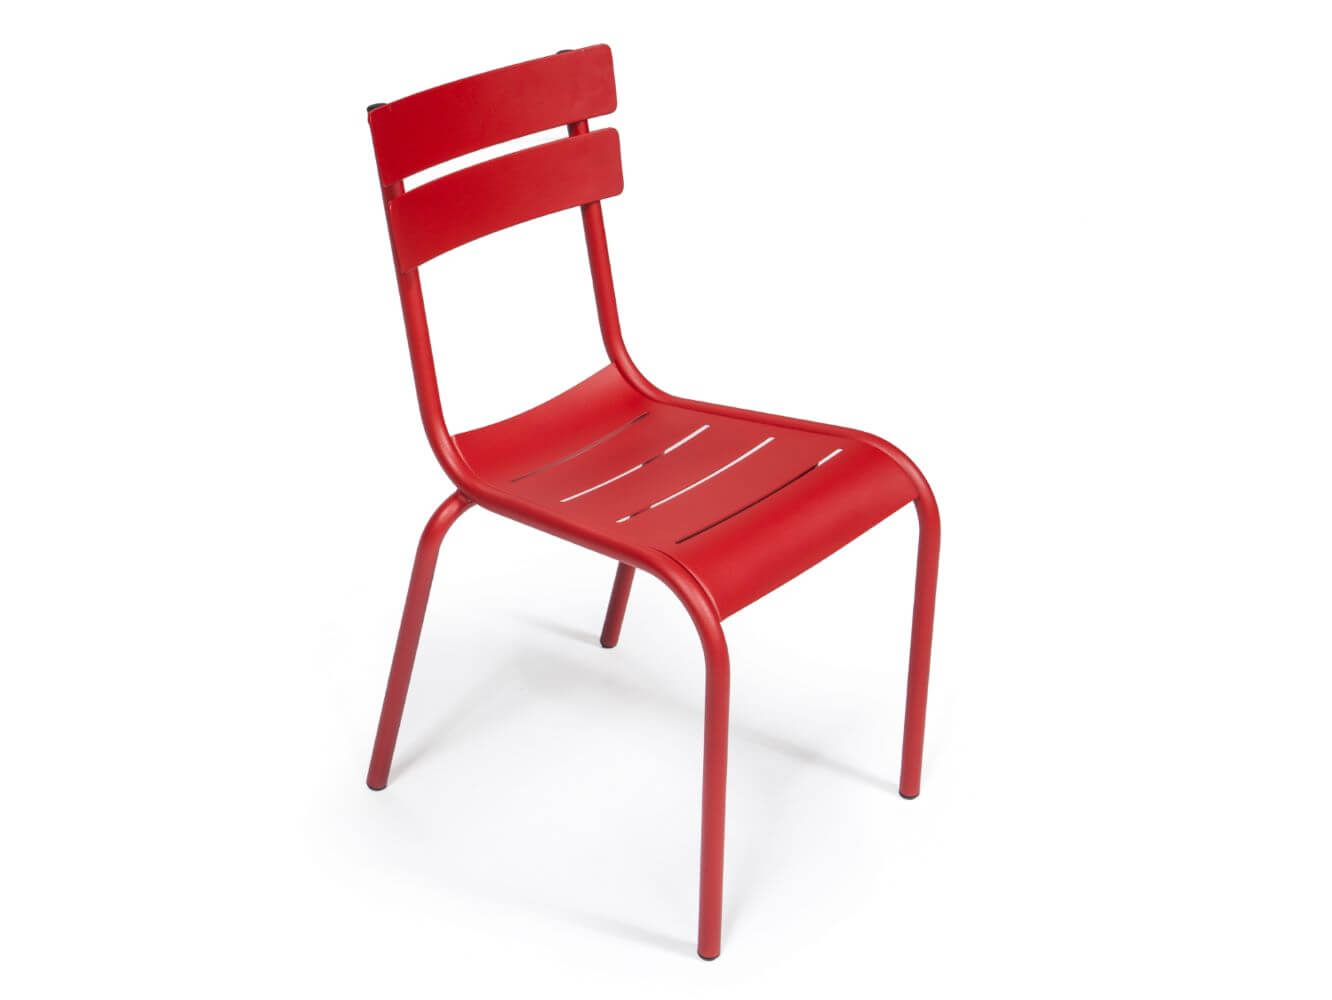 Porto aluminium chair in red, 4 leg base - view from above, no armrests